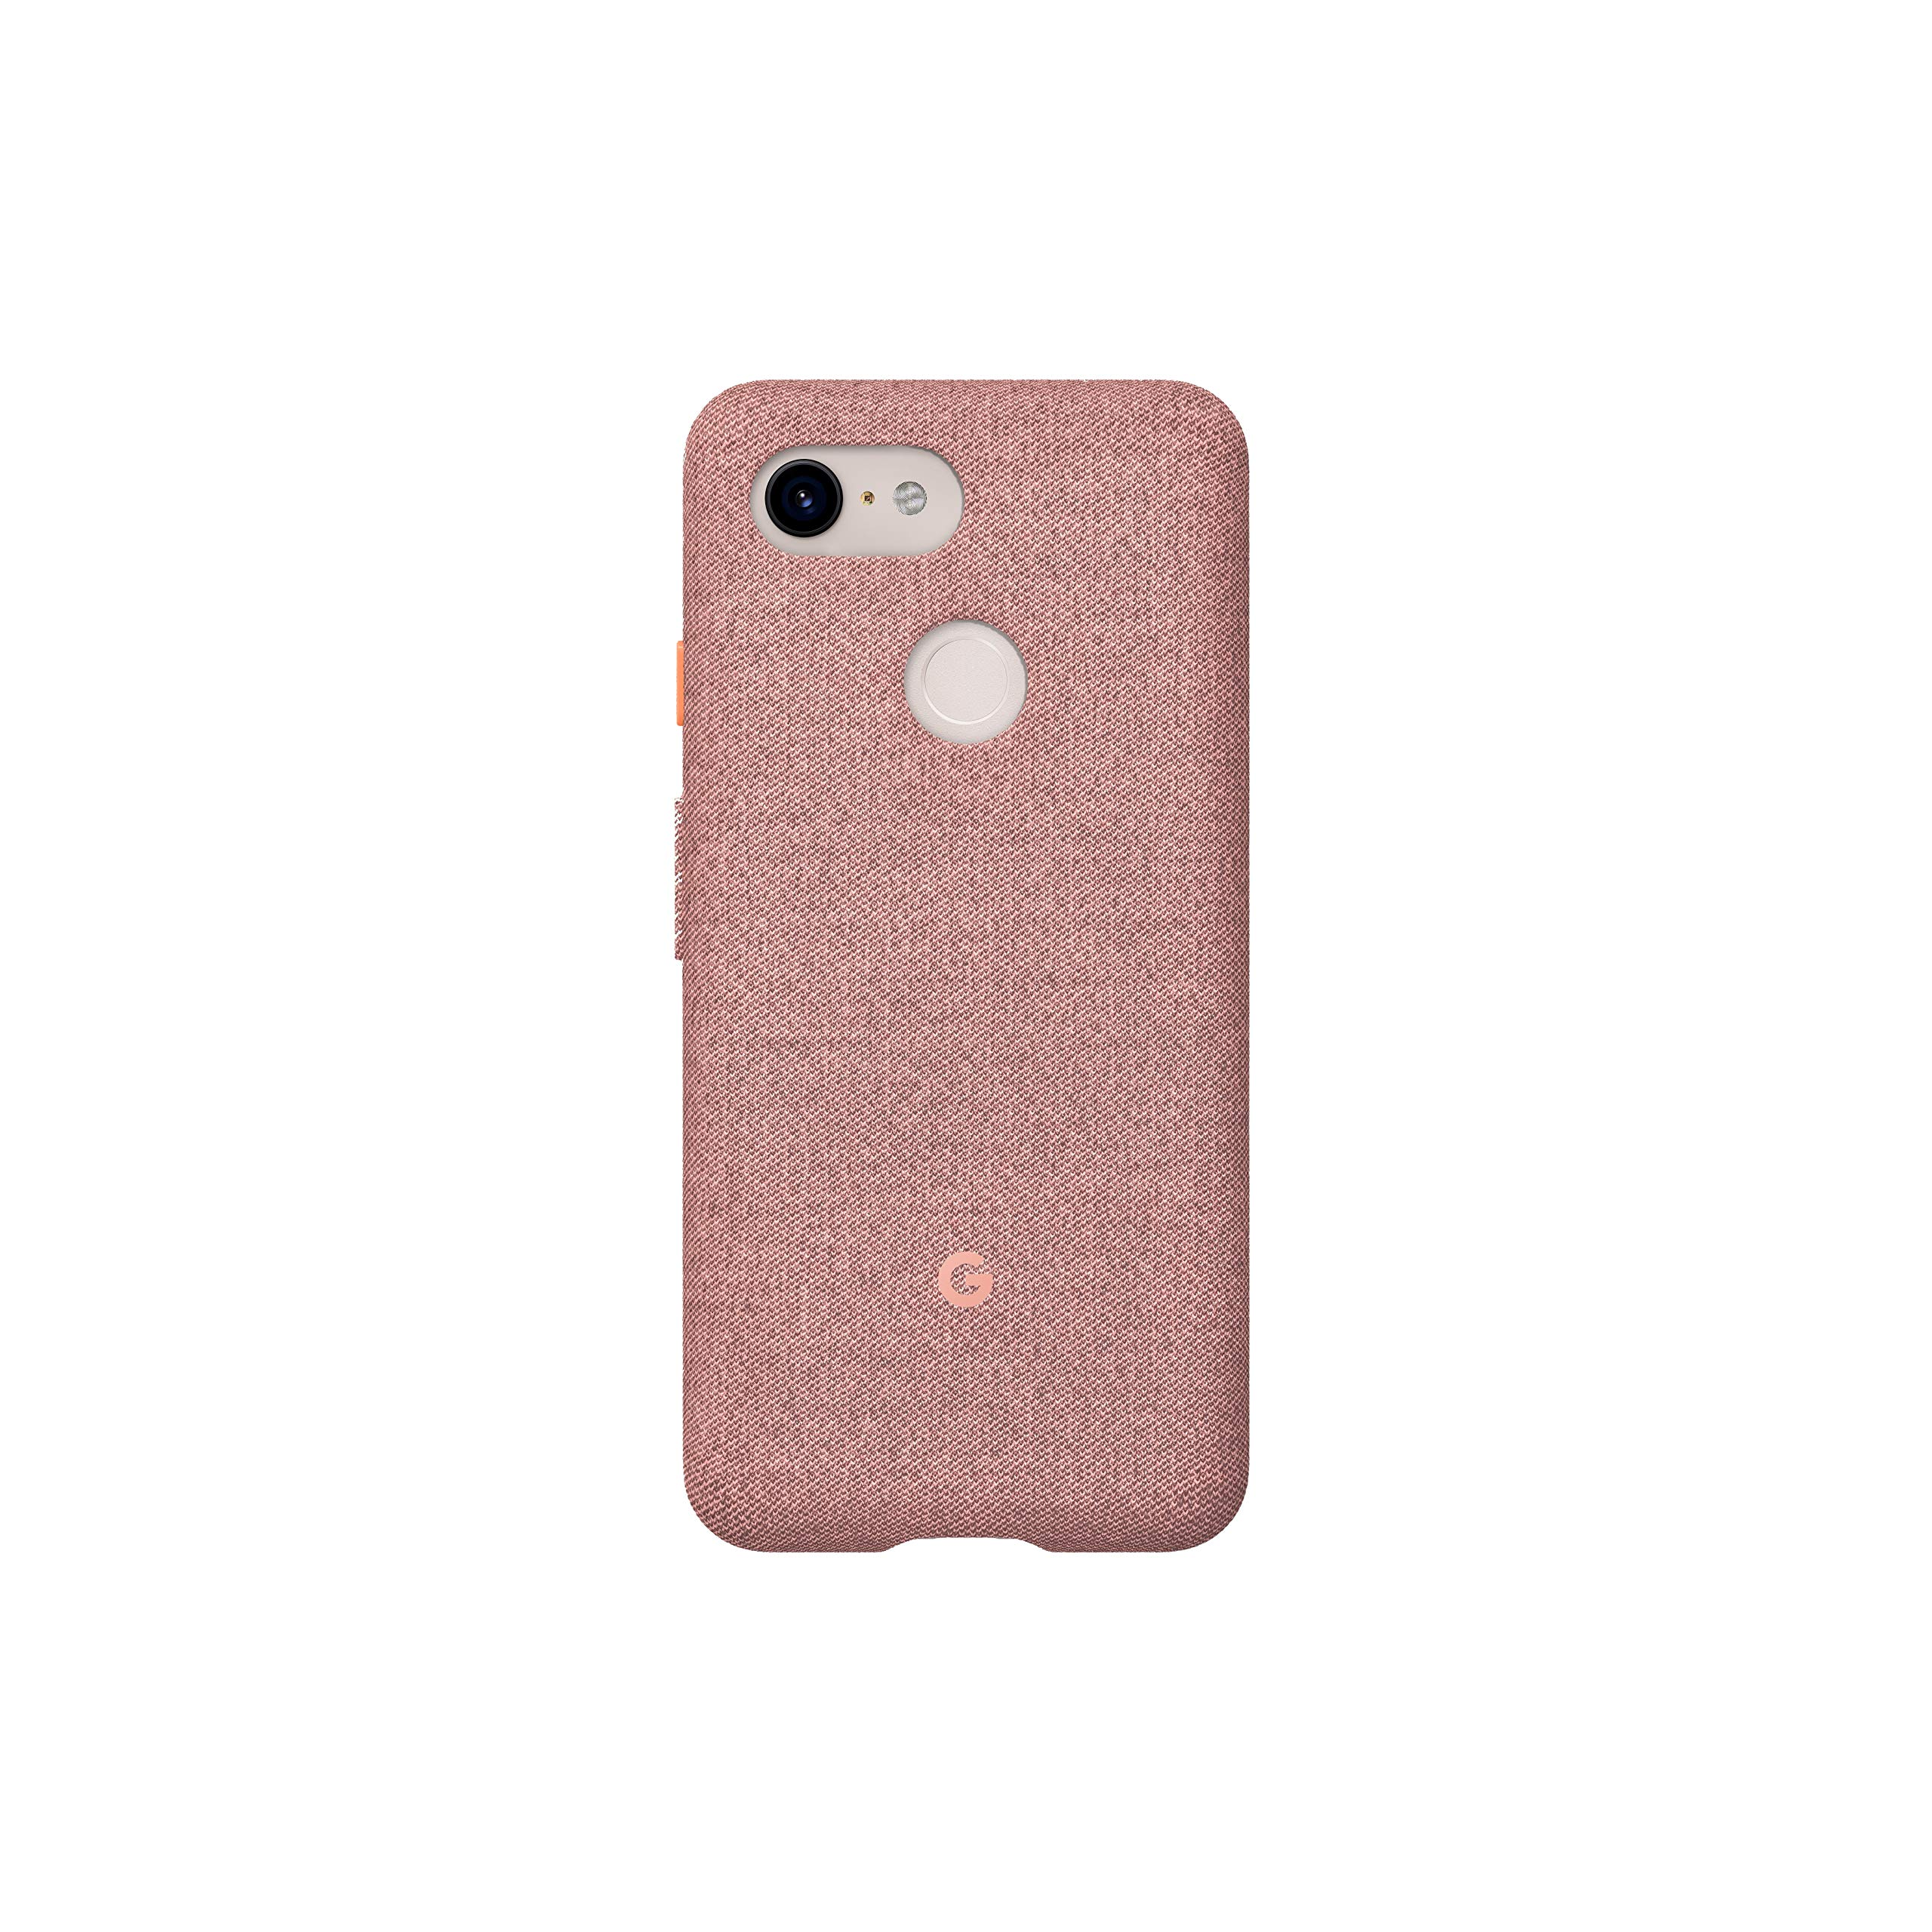 Google Fabric Case Cell Phone Case for Pixel 3XL - Pink Moon Fabric